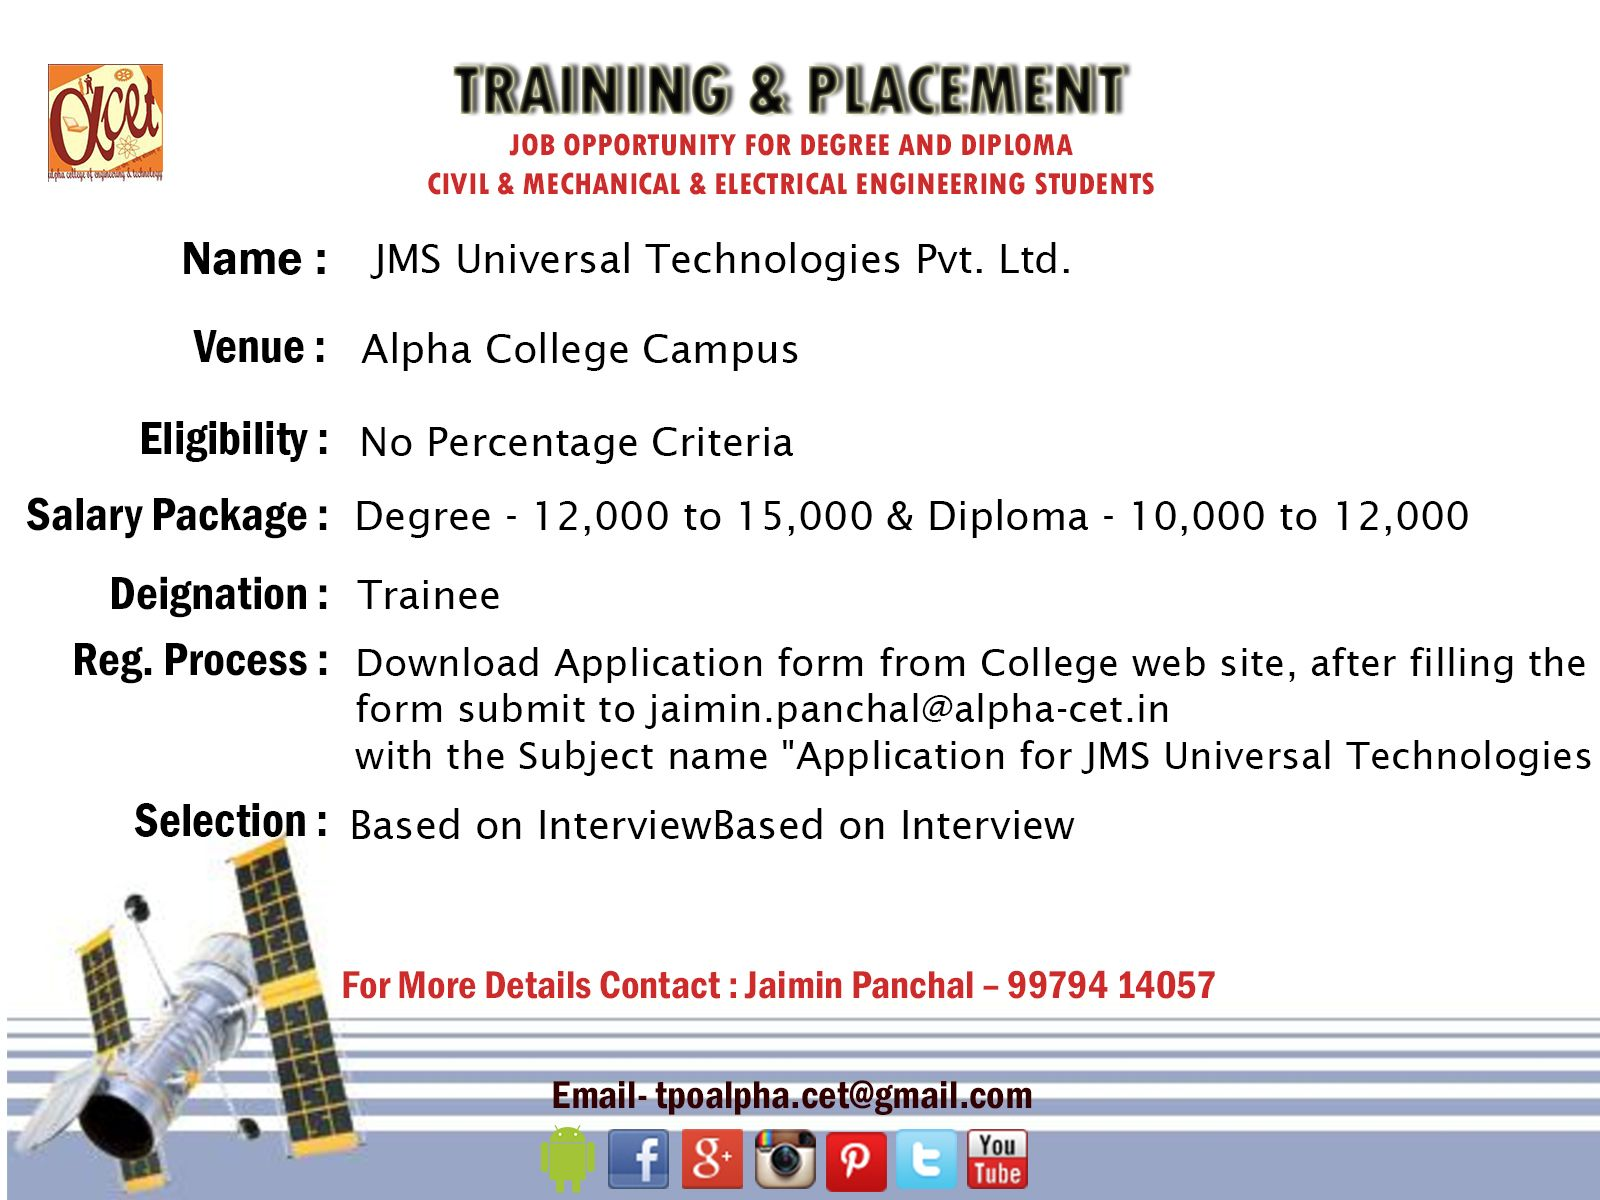 1d0ab07c75b2cd2ee070084b9012cedc - Application For Industrial Training Placement